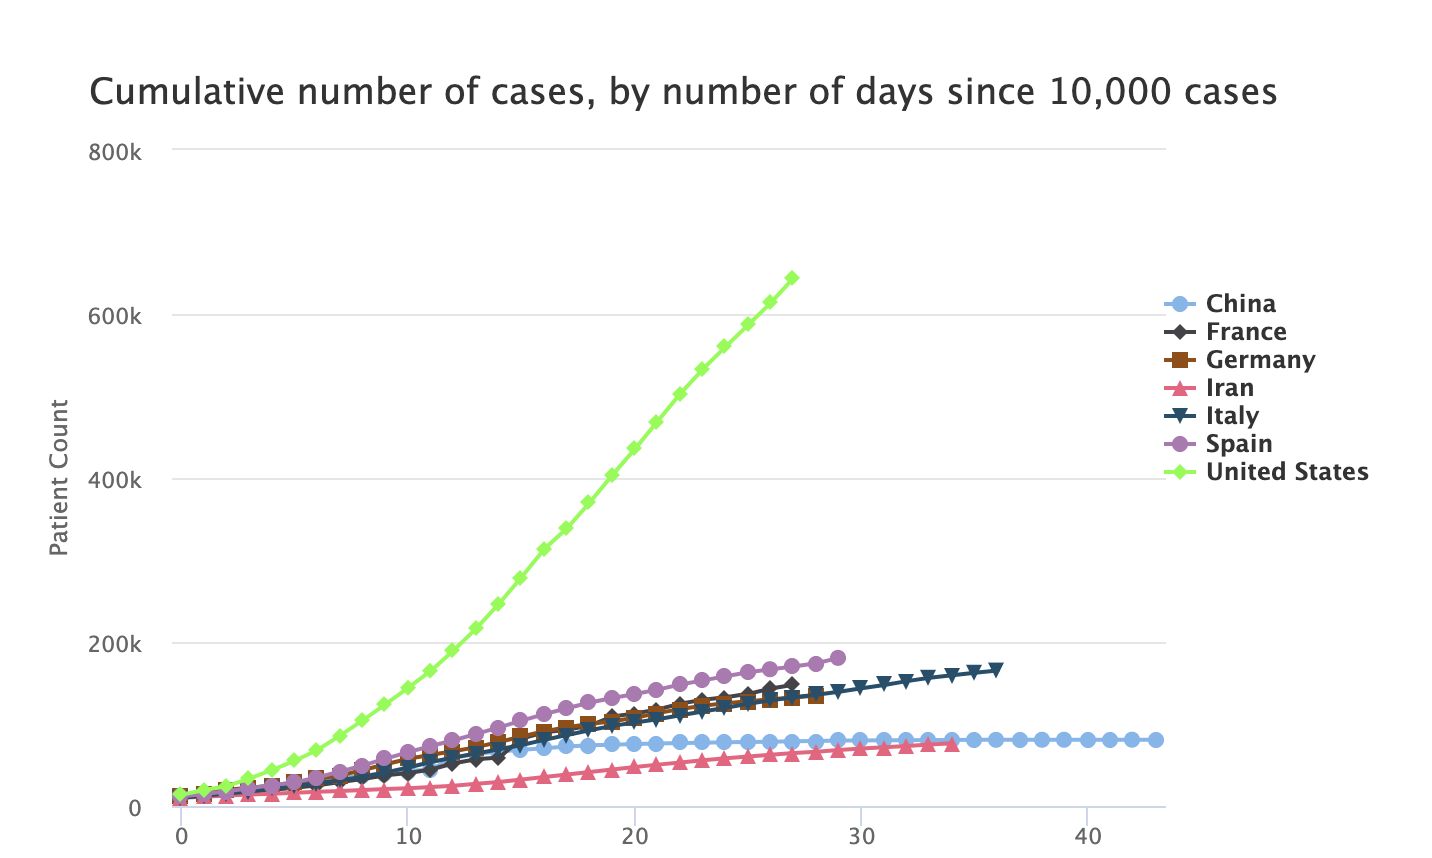 Cumulative number of COVID-19 cases by number of days